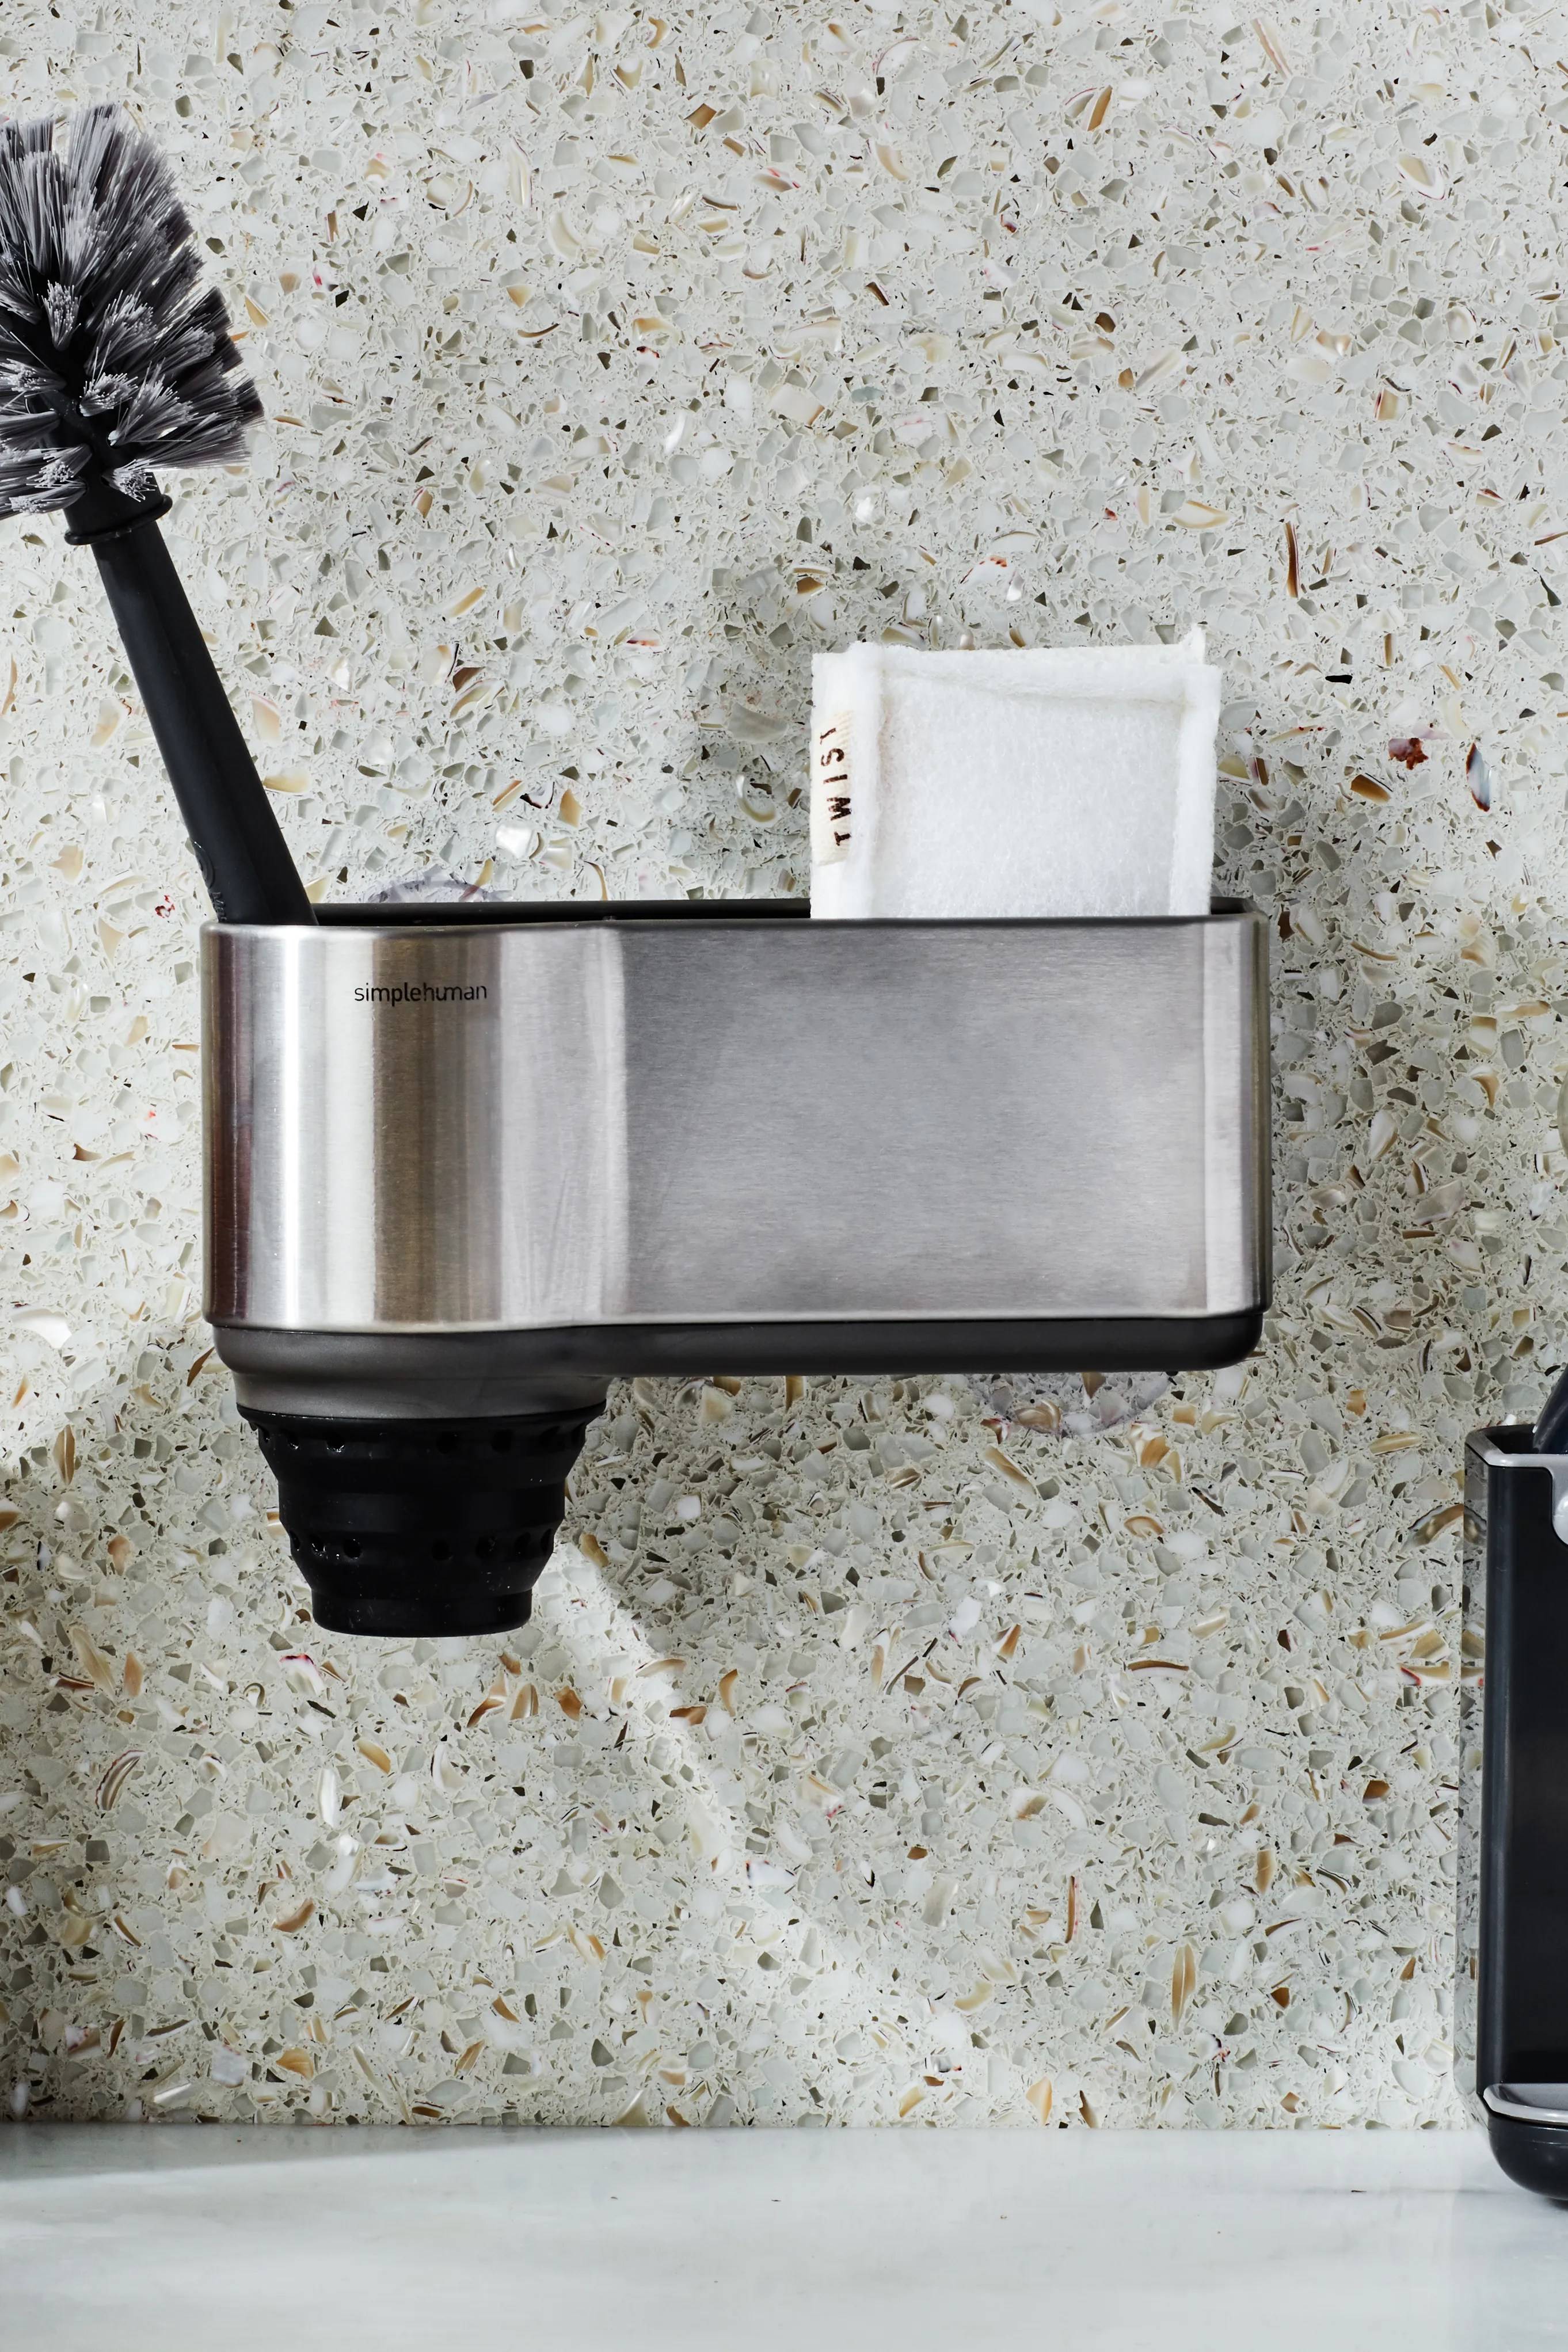 the best sink caddy 2021 epicurious